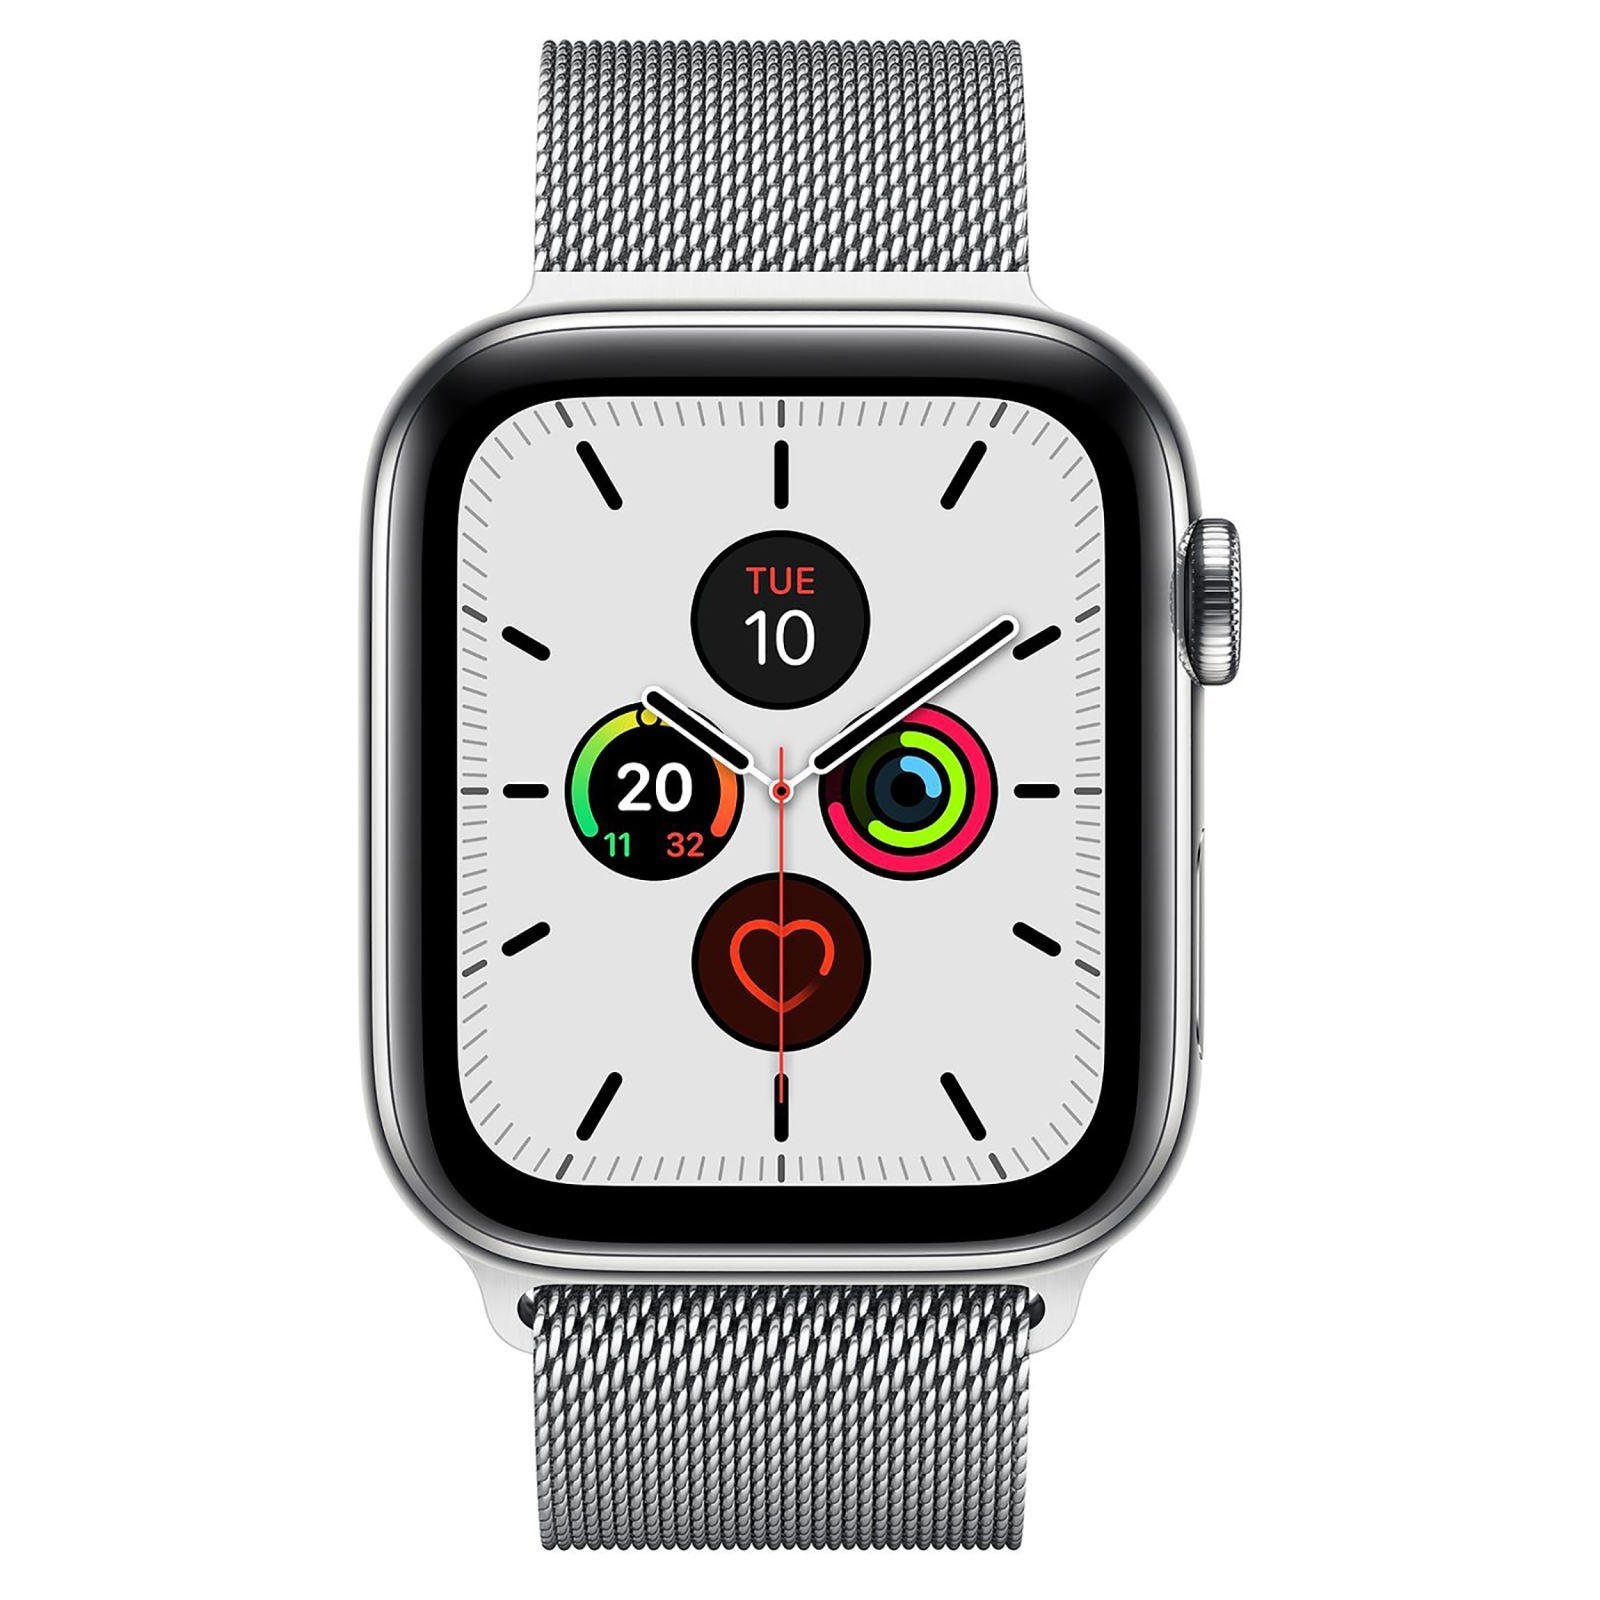 44mm Stainless Steel Case